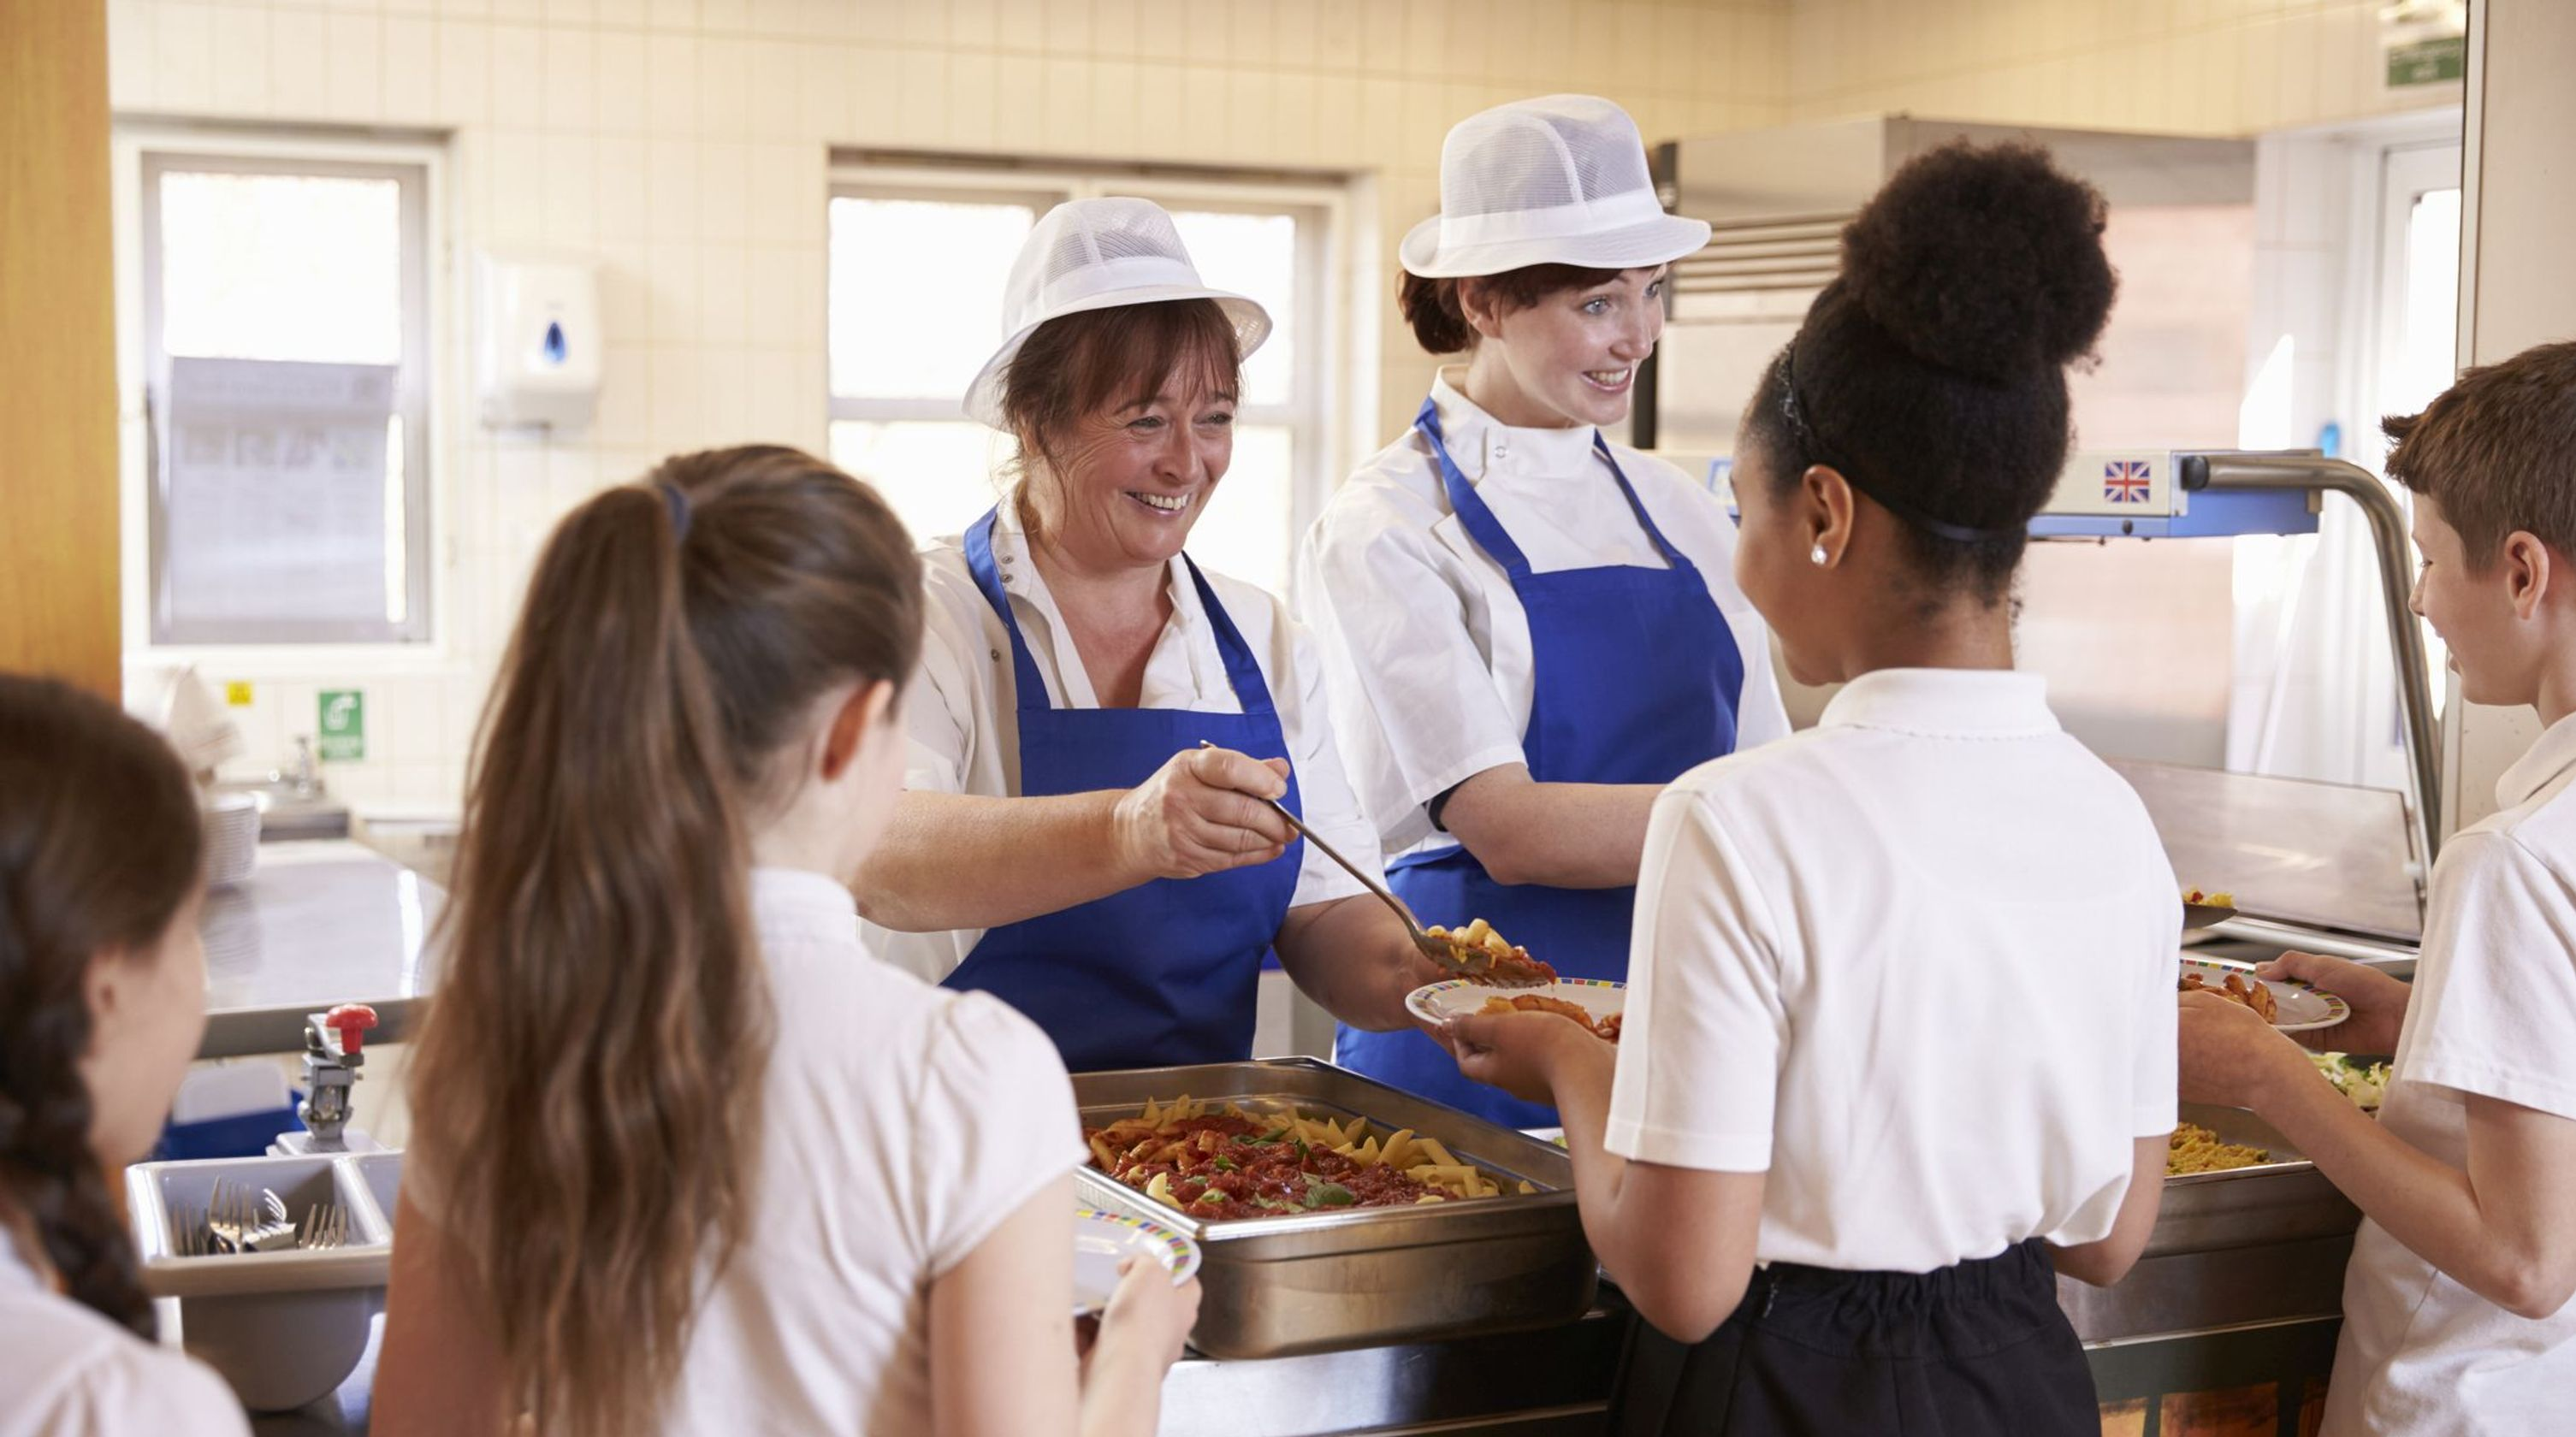 School district sics debt collectors on parents for unpaid lunch fees